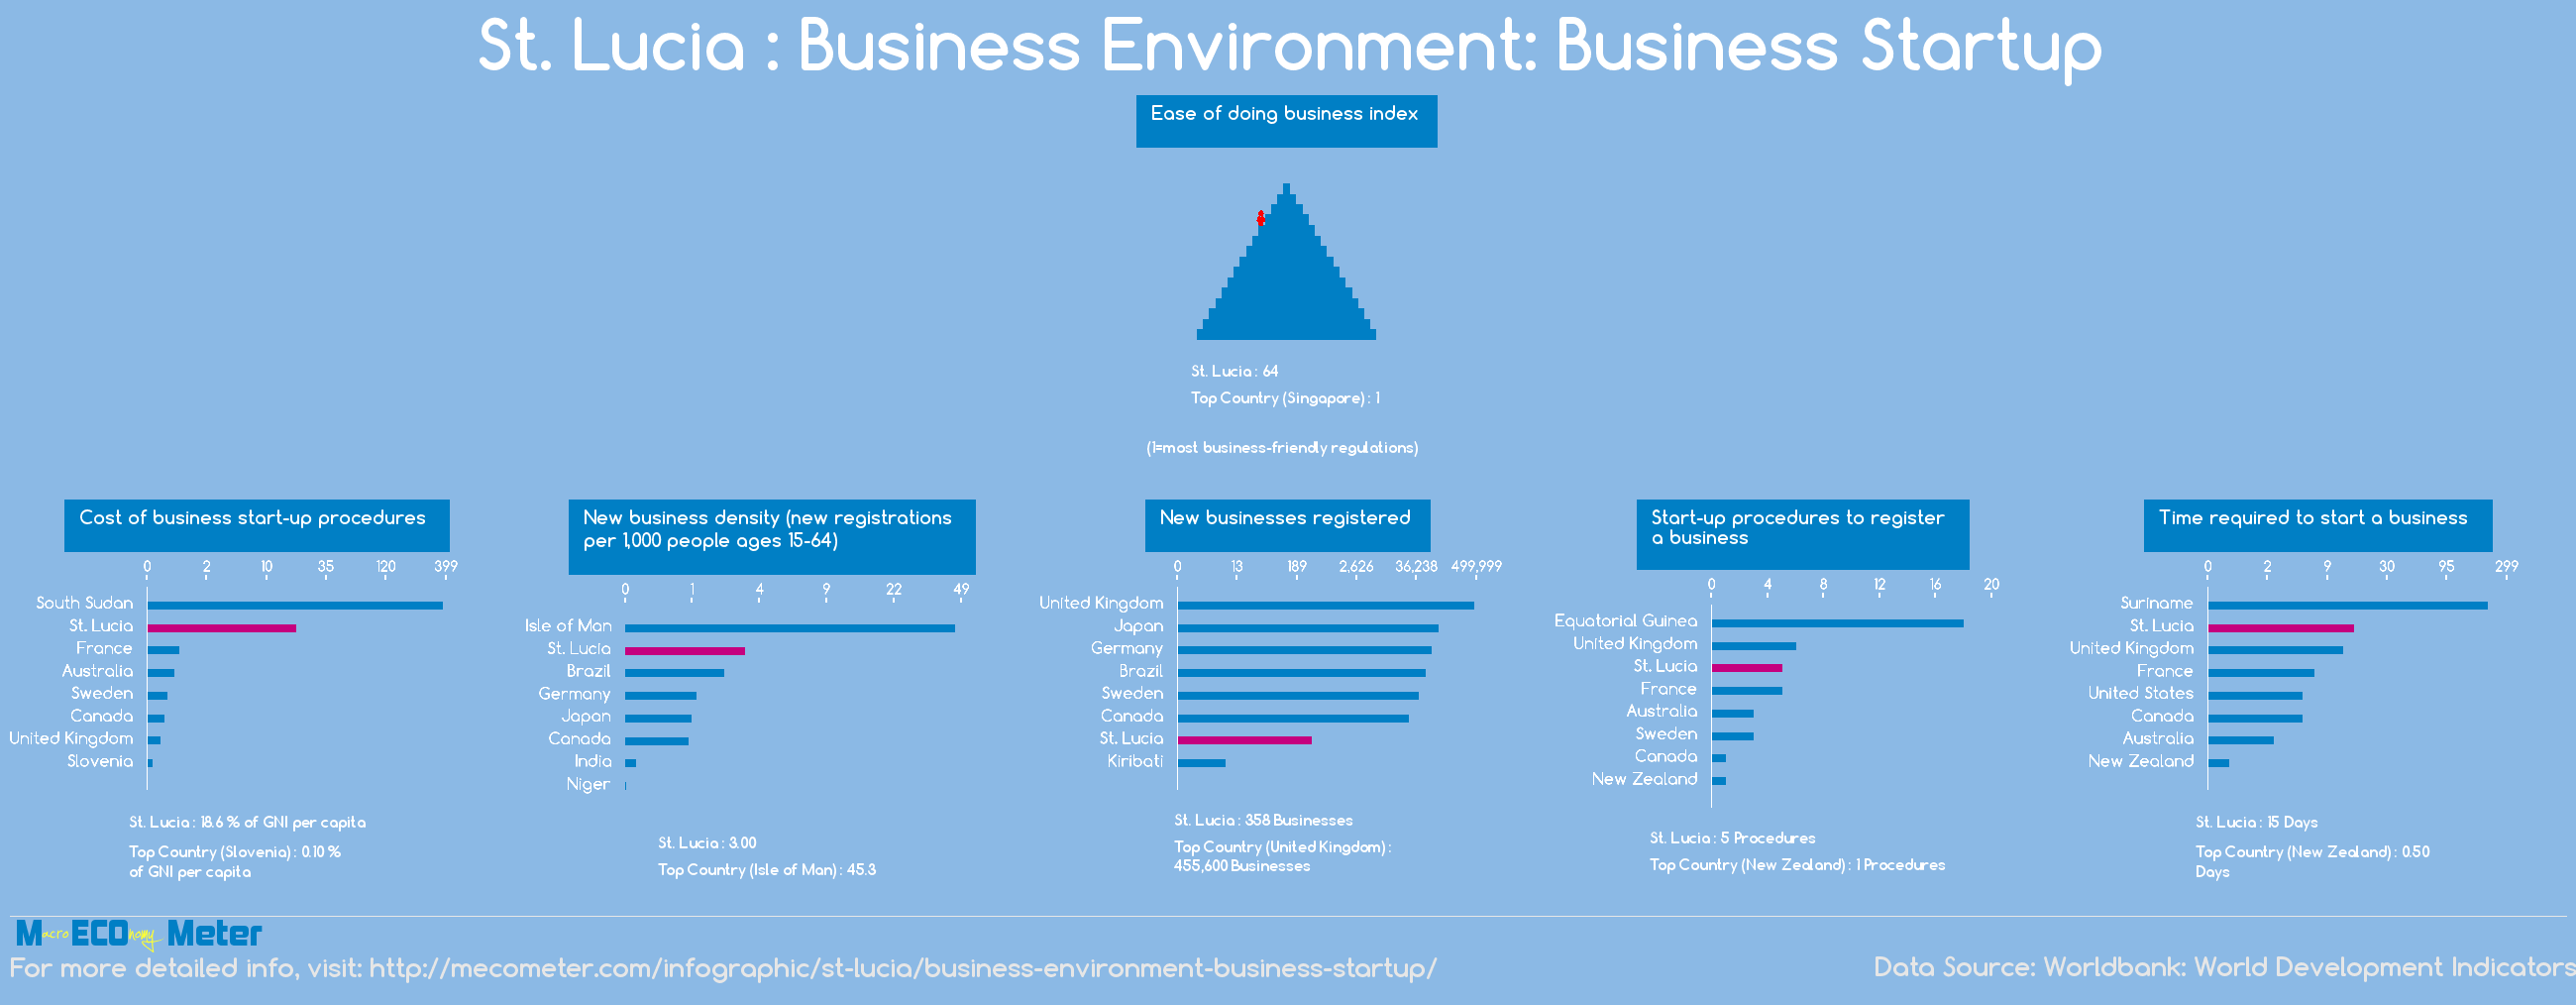 St. Lucia : Business Environment: Business Startup